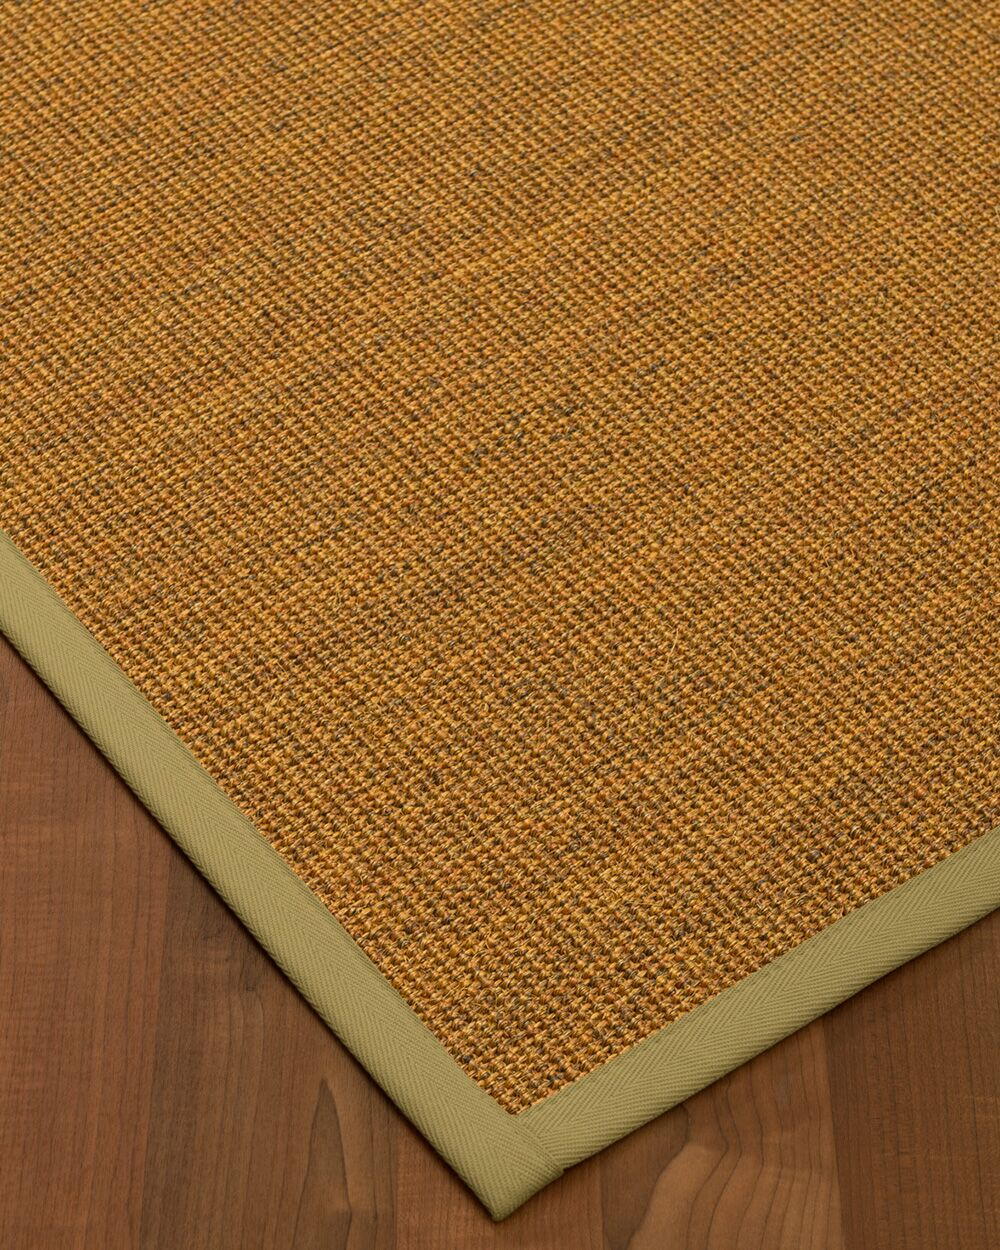 Halsted Hand-Woven Beige Area Rug Rug Size: Rectangle 12' x 15'